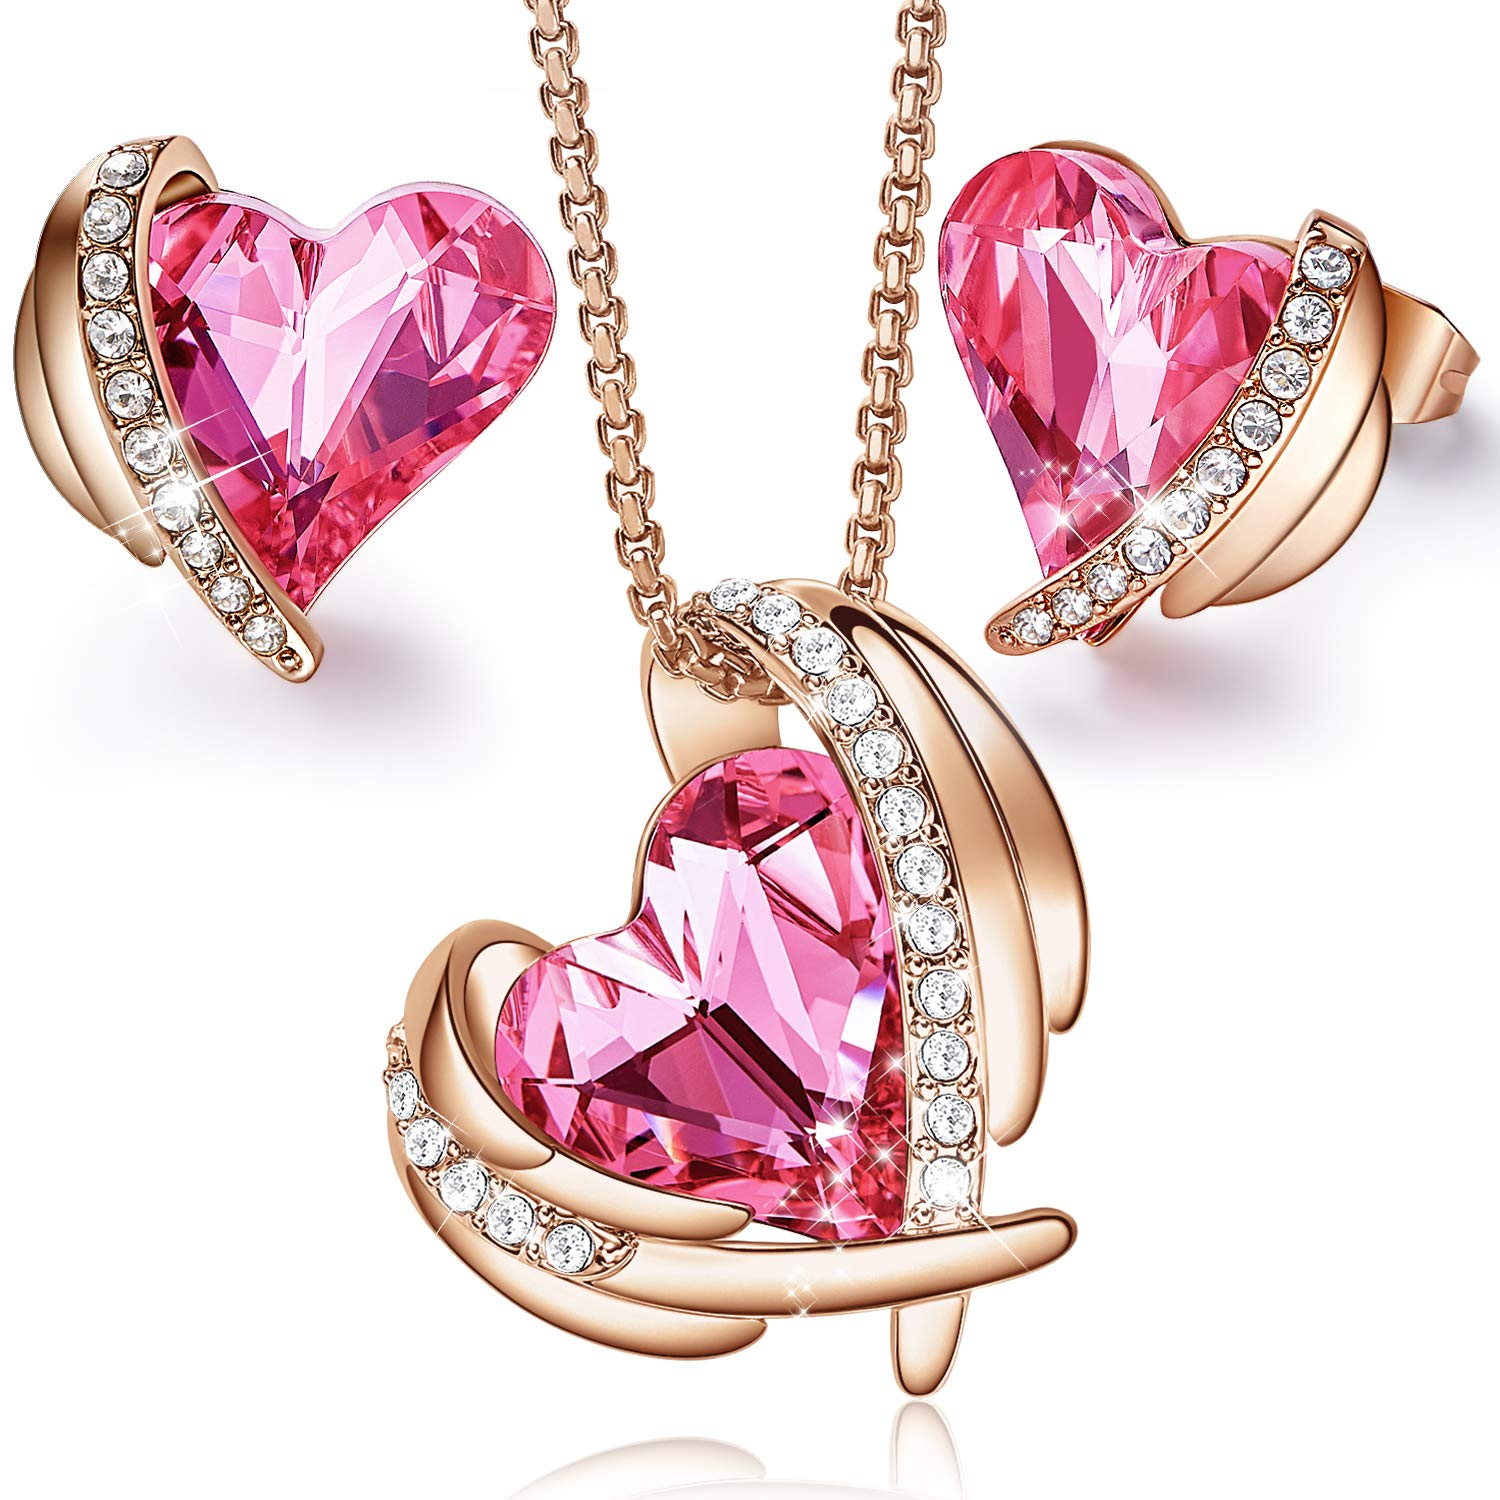 CDE ''Pink Angel 18K Rose Gold Plated Pendant Necklaces Women Embellished with Crystals from Swarovski Necklace Heart Jewelry Fashion for Her, Gift for Mothers Day(Pink-(Small Size))